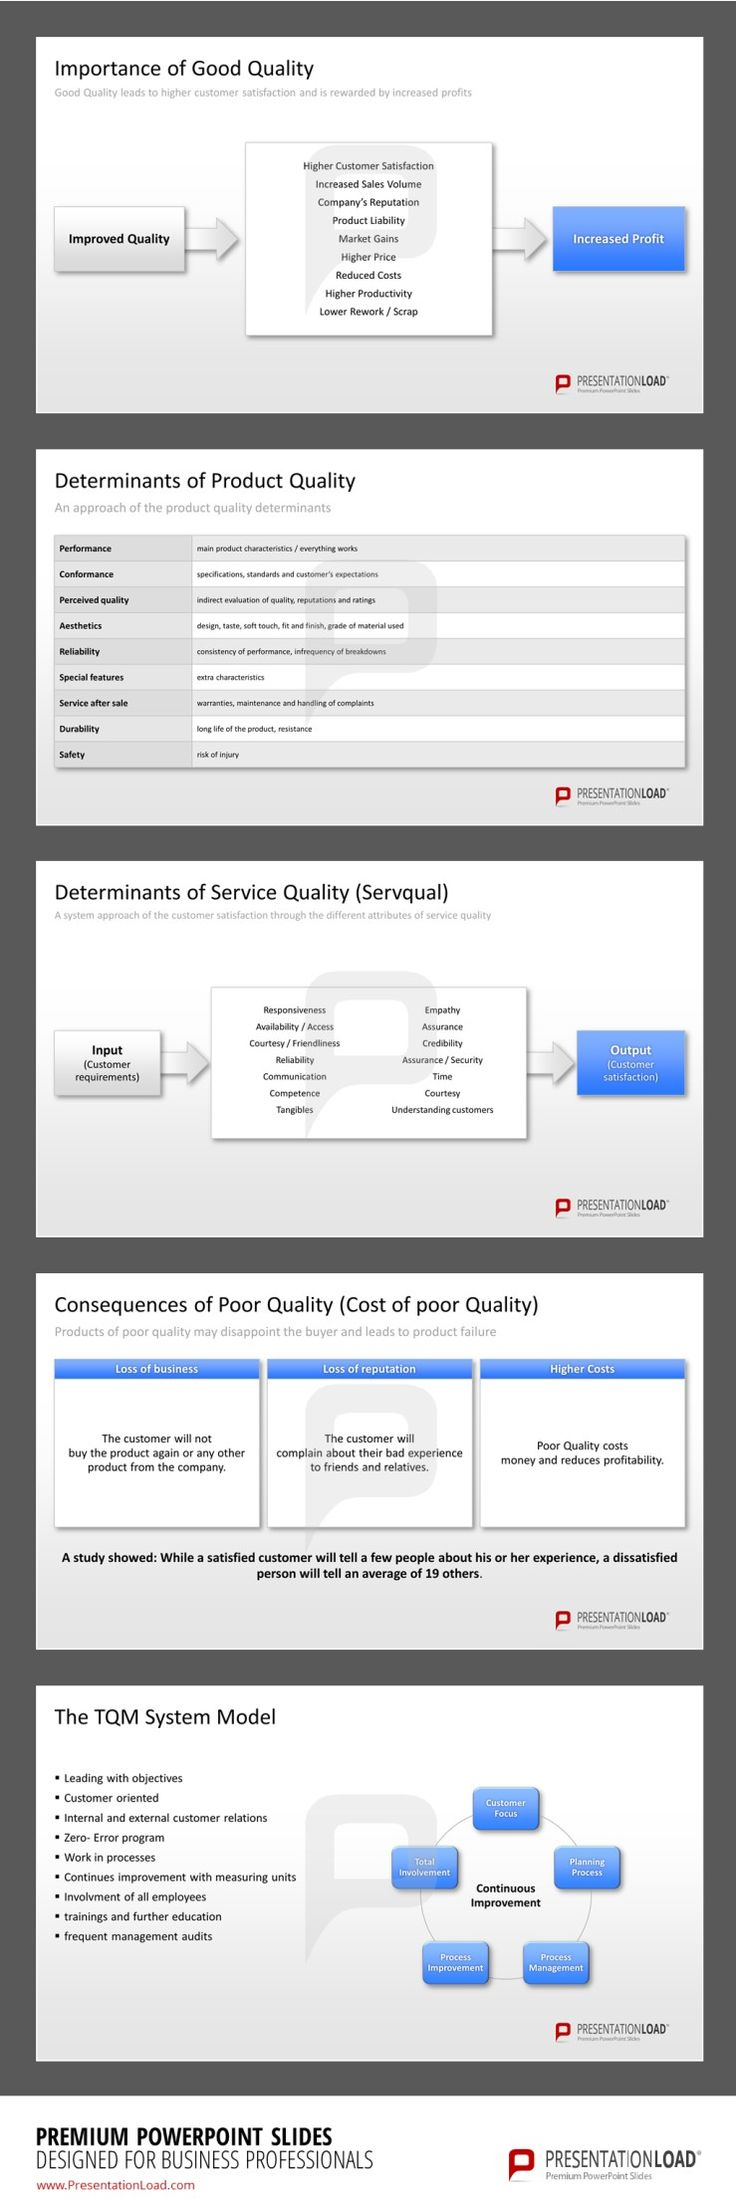 Total-Quality Management PowerPoint Templates for presenting the importance and the determinants of quality and the consequences of poor quality. #presentationload www.presentationl...